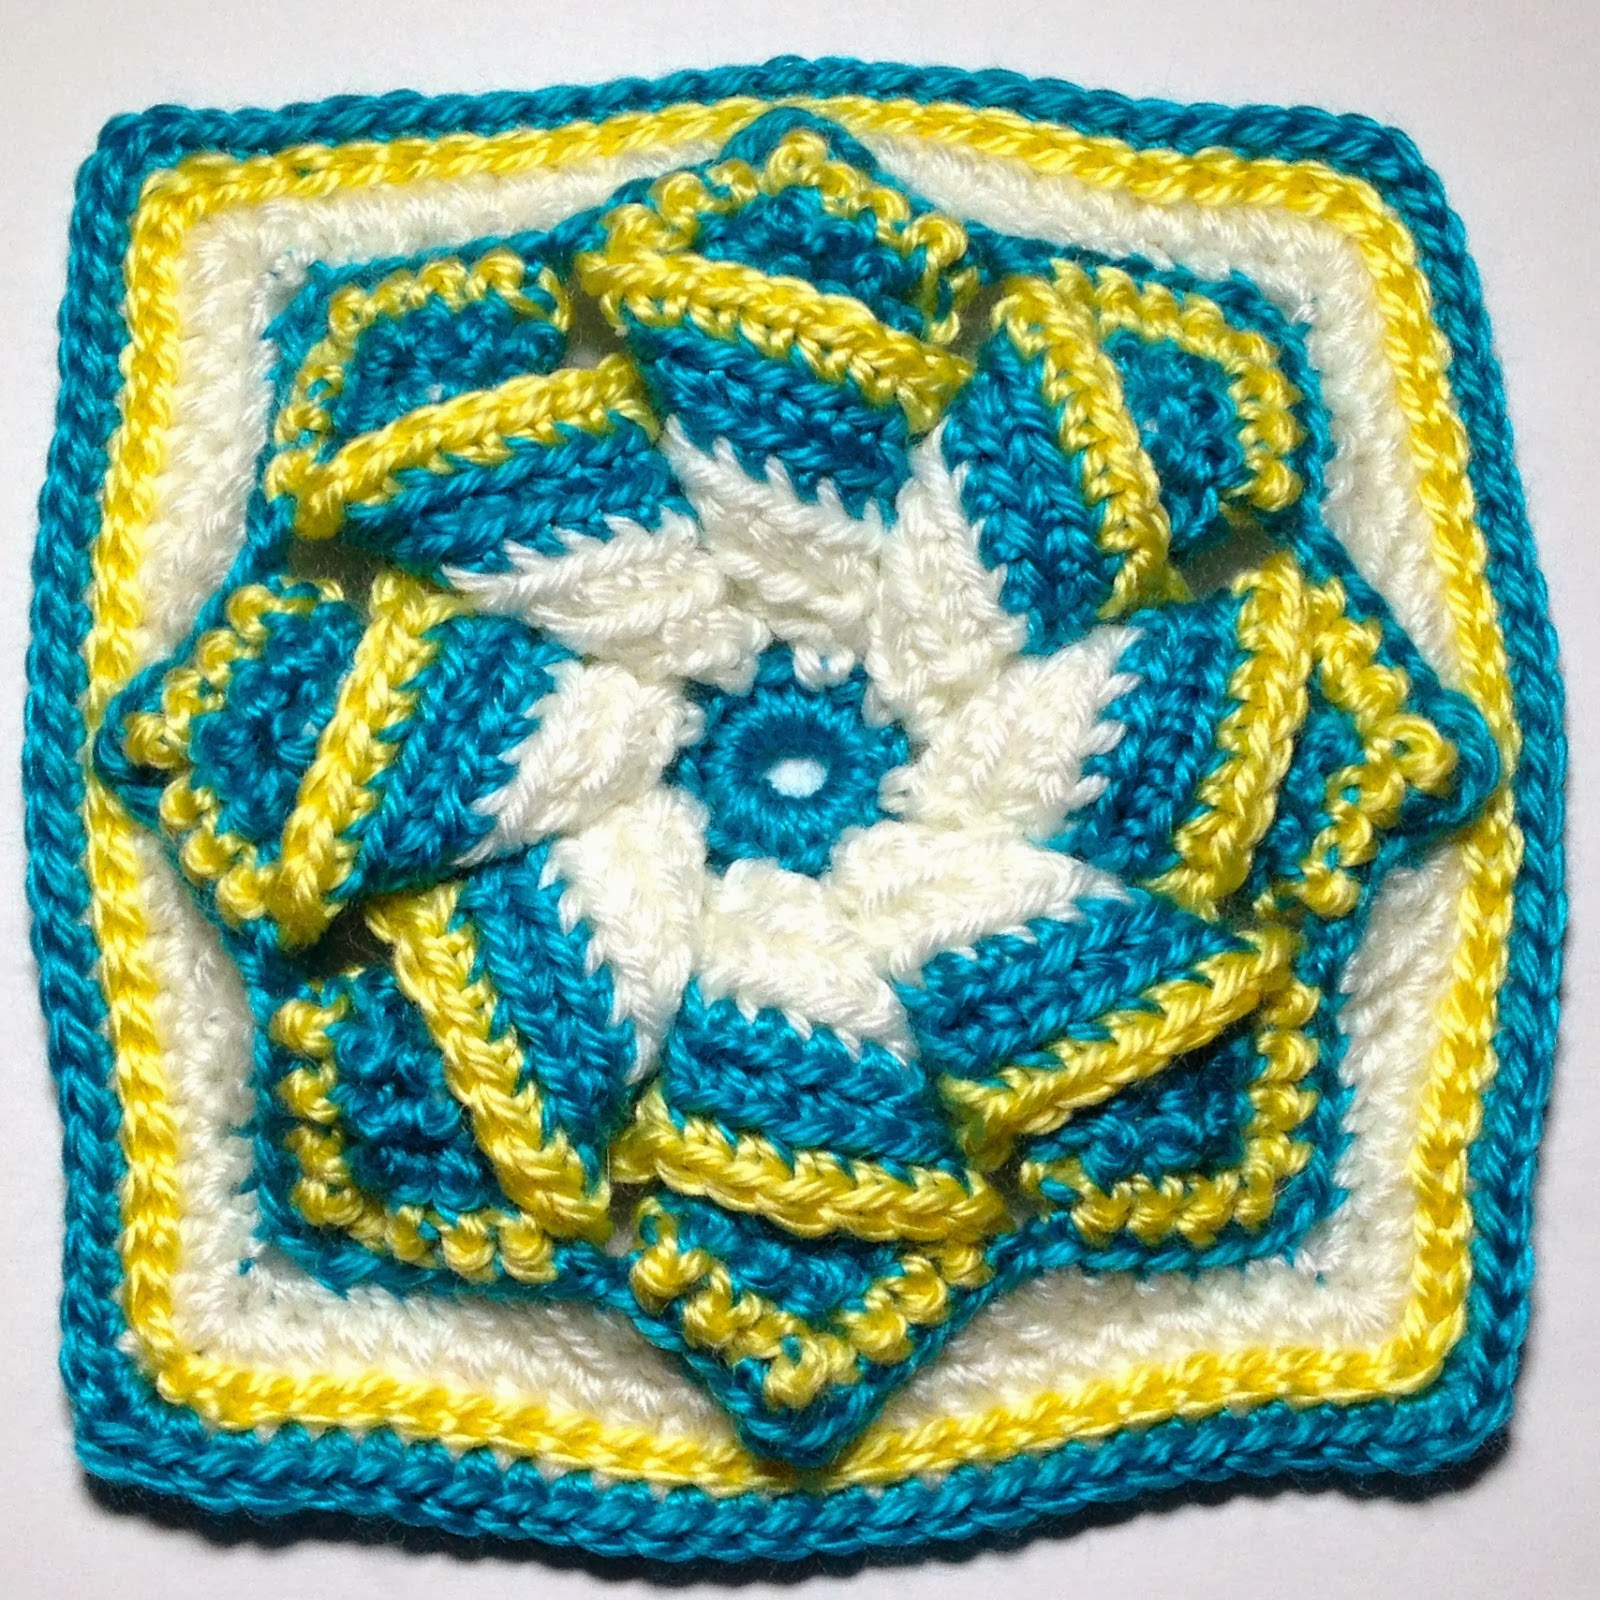 Free Crochet Square Pattern Diagram Wiring Programmable Thermostat Patterns Granny Motif